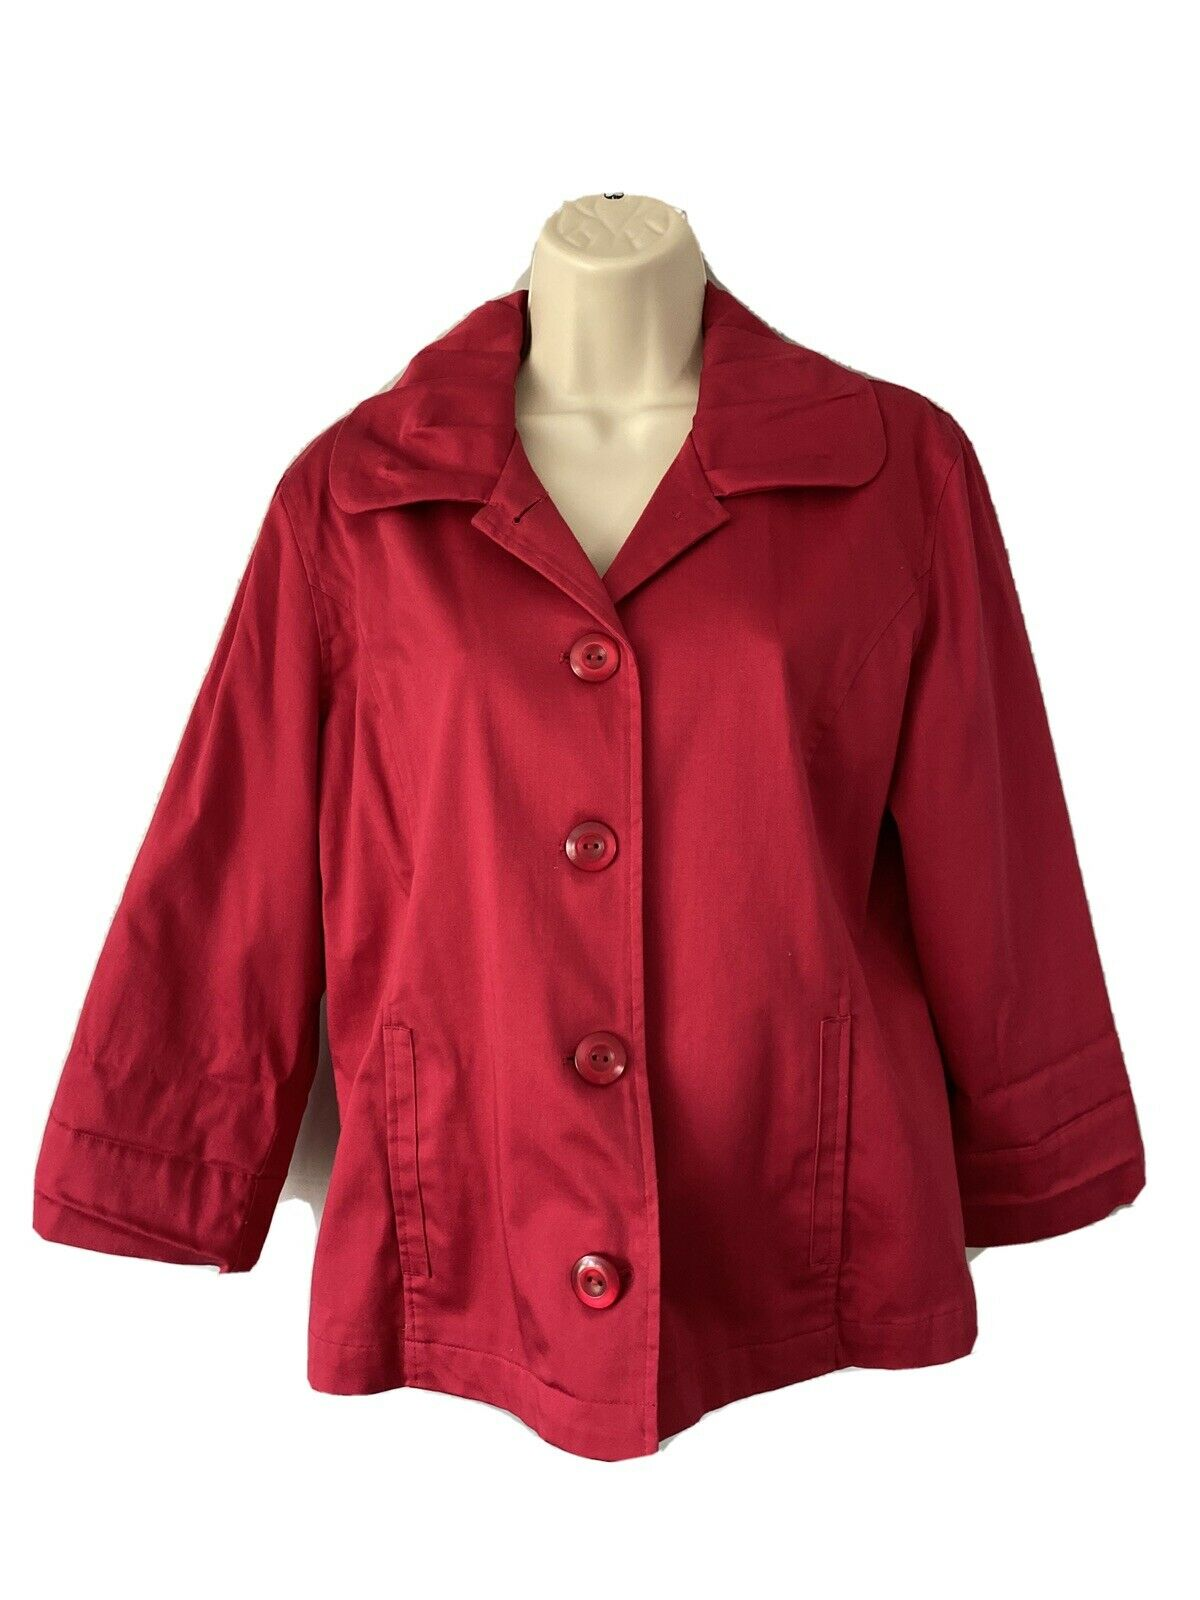 Chico's Womens SZ 1 Red 4 Button Front Jacket Lined 3/4 Sleeve Cotton Blend Coat